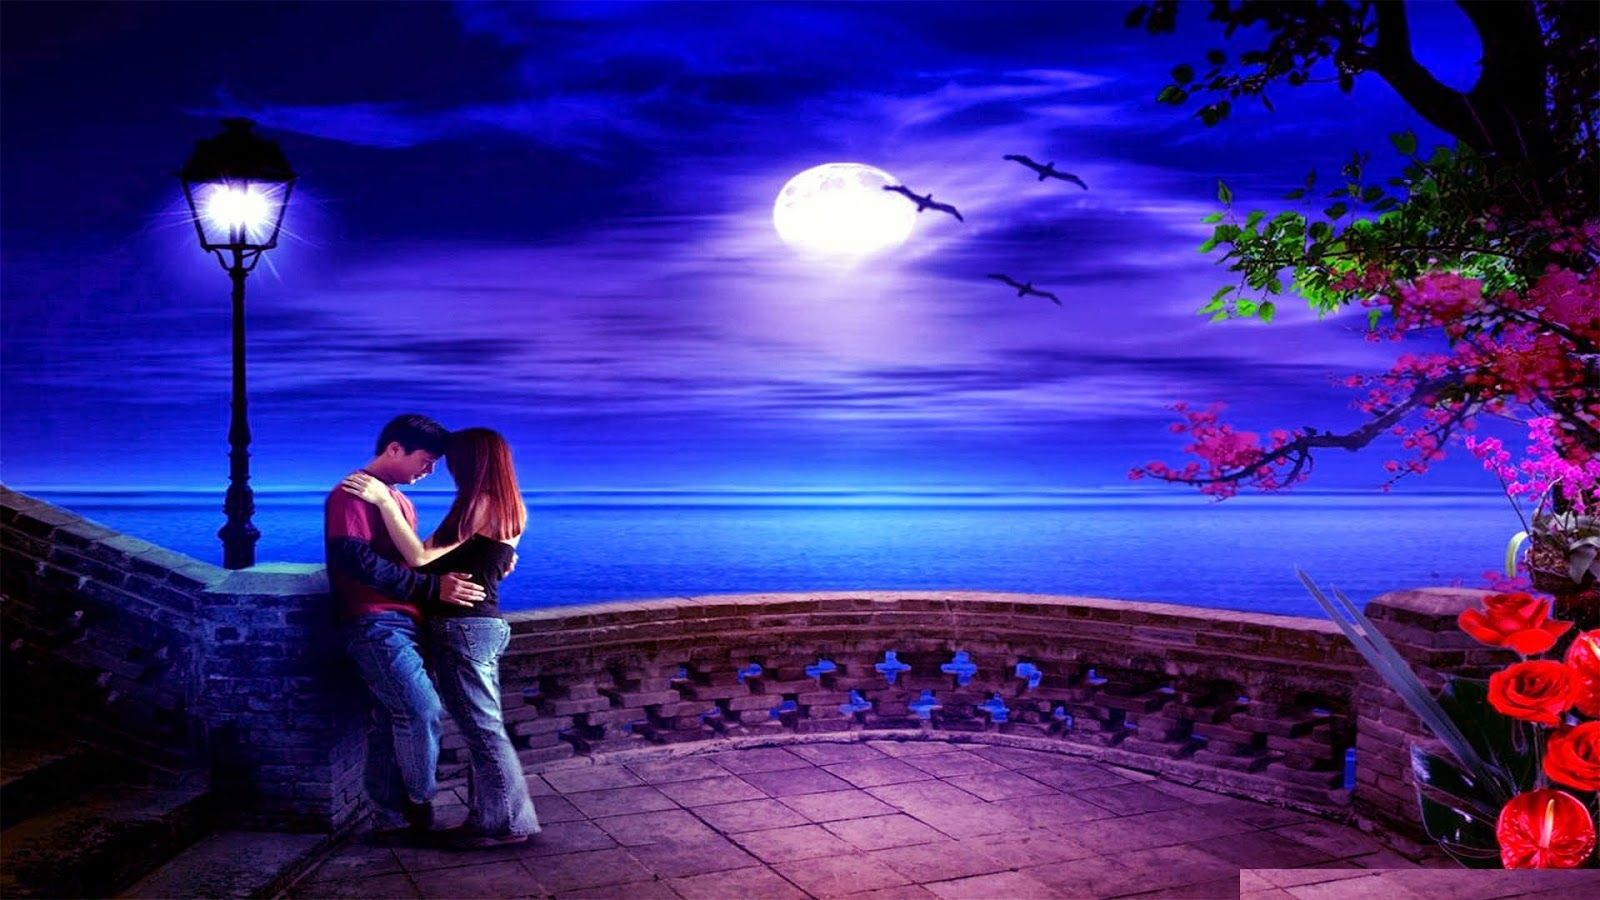 Romantic Hd Wallpapers Backgrounds Wallpaper